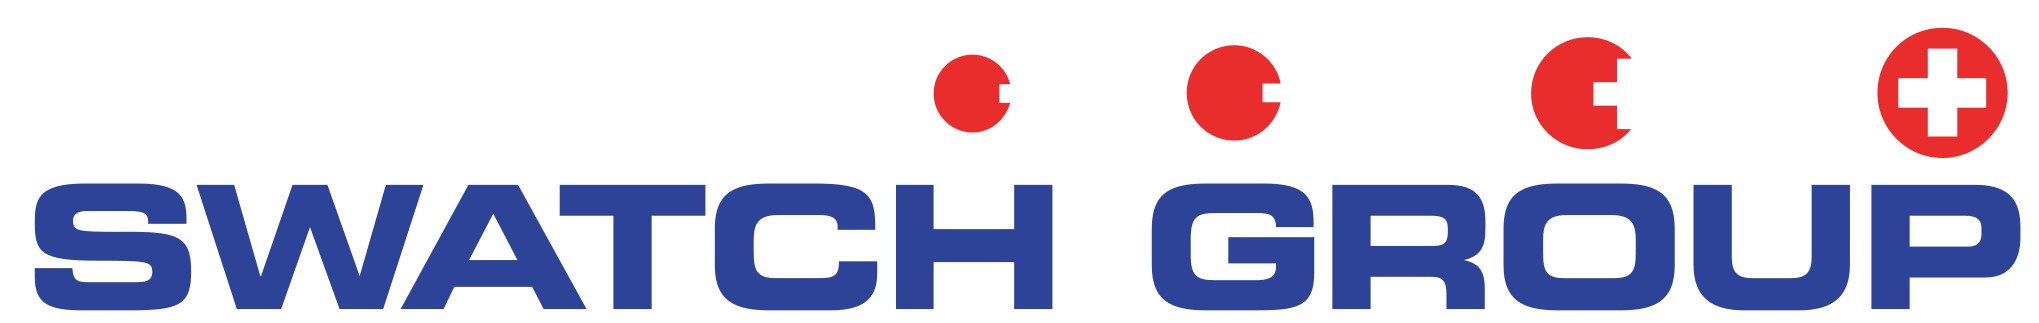 Swatch-Group-Logo-e1555417671269.png